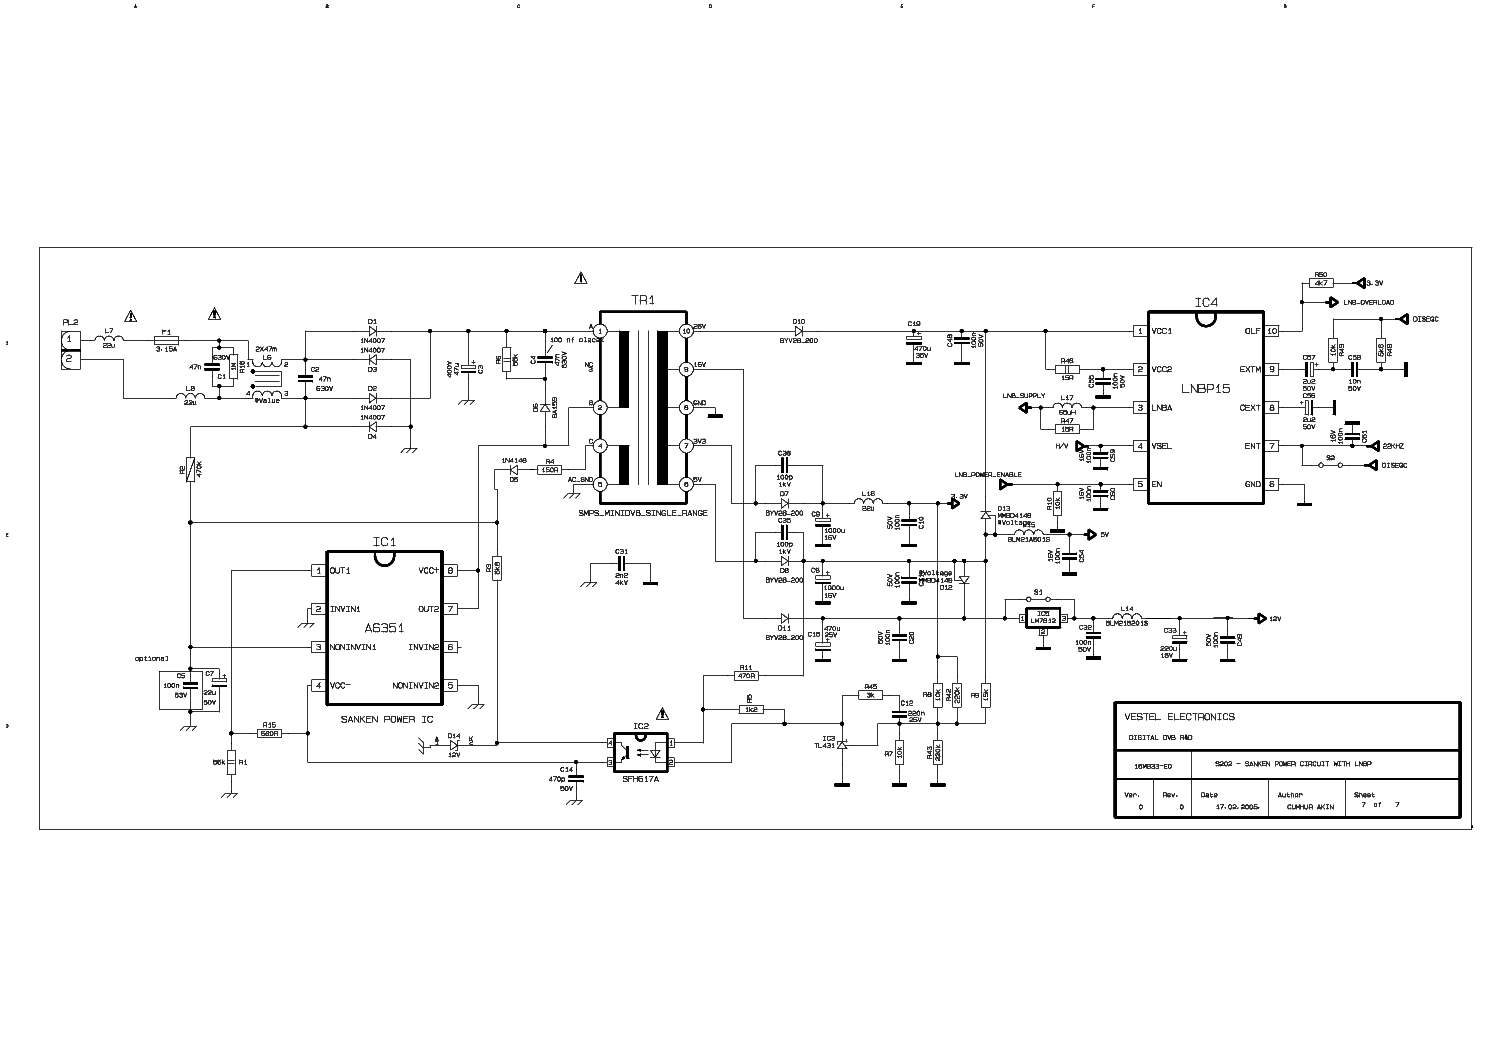 17pw25 4 Circuit Diagram Wiring Diagrams Schematics Vestel 16mb33 E0 Sch Service Manual Download Eeprom On Parallel Port Straight